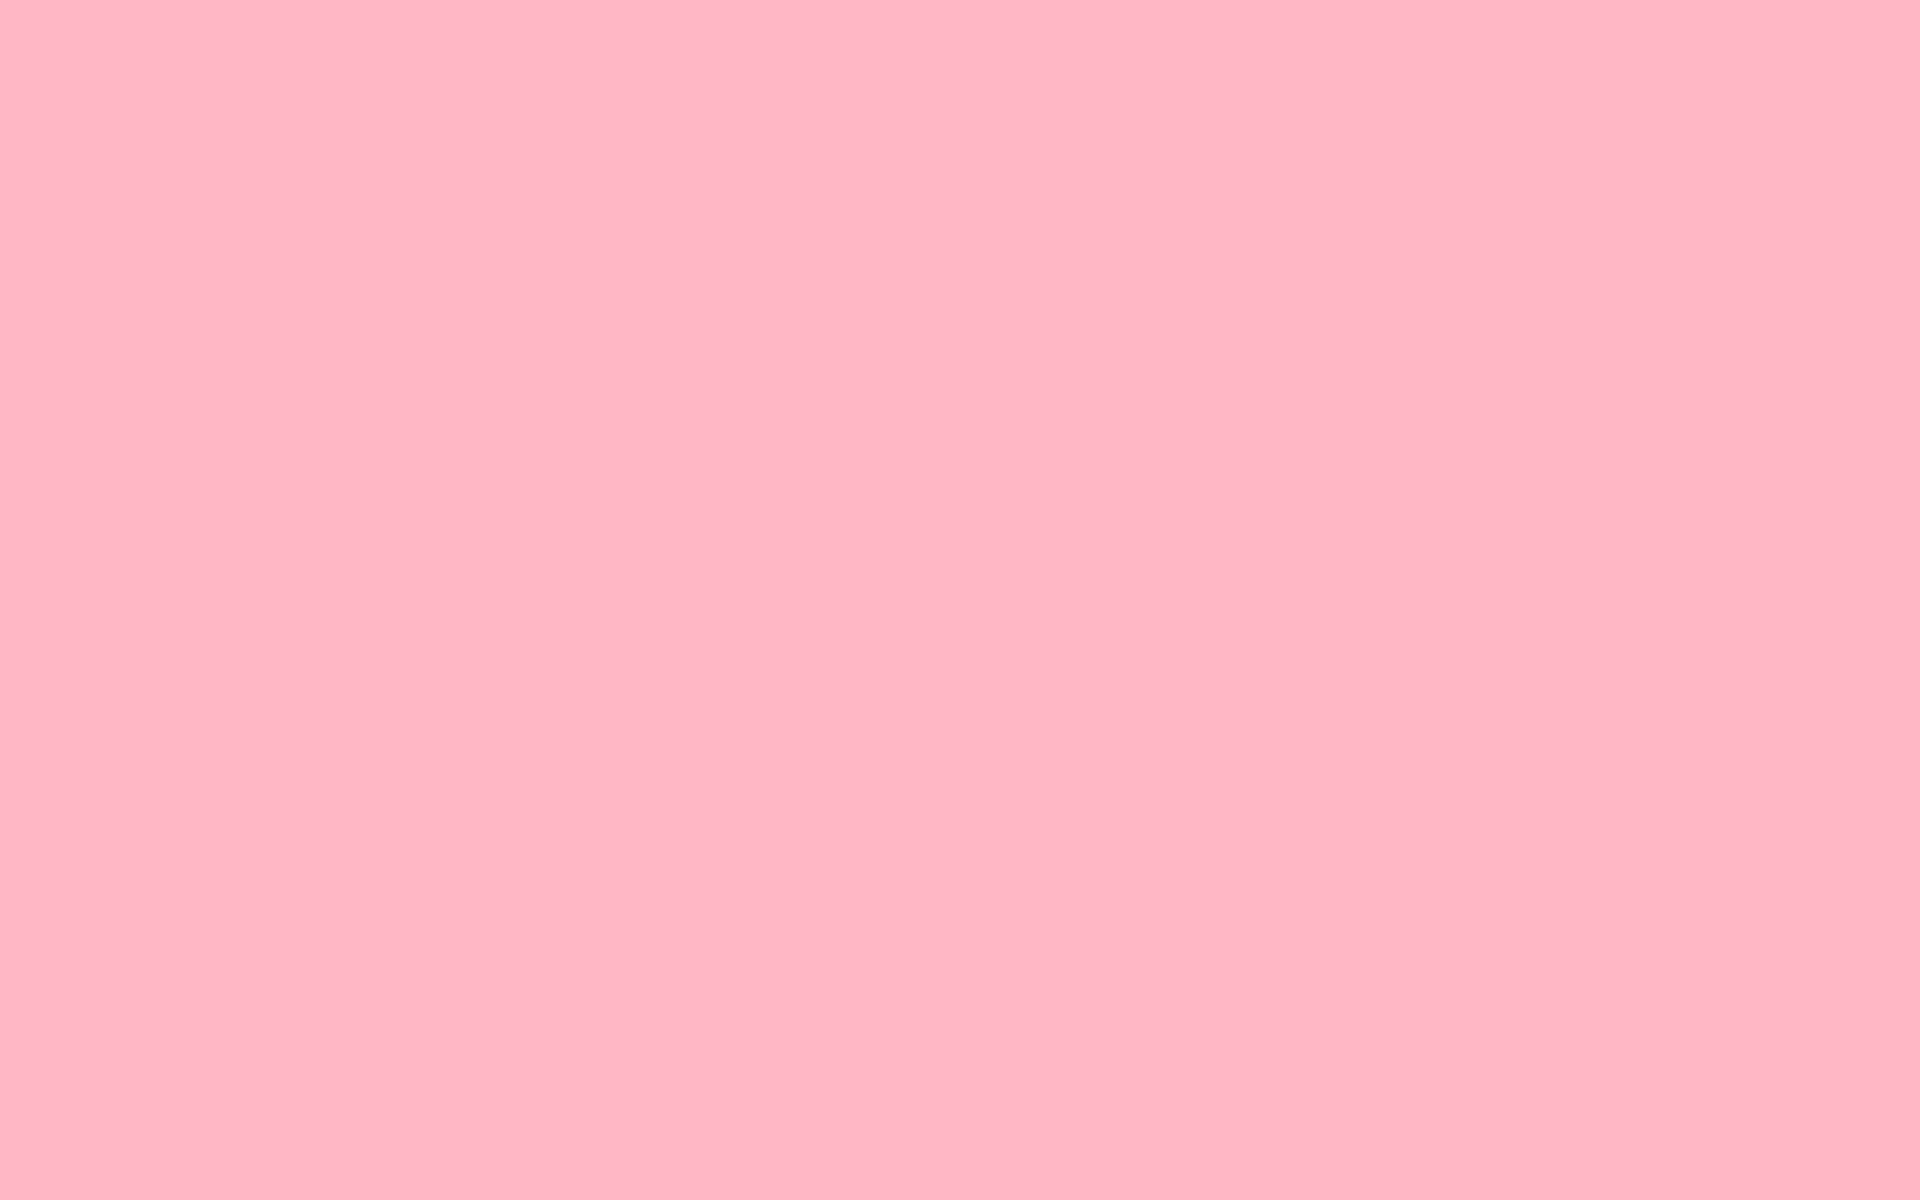 1920x1200 Cherry Blossom Pink Solid Color Background